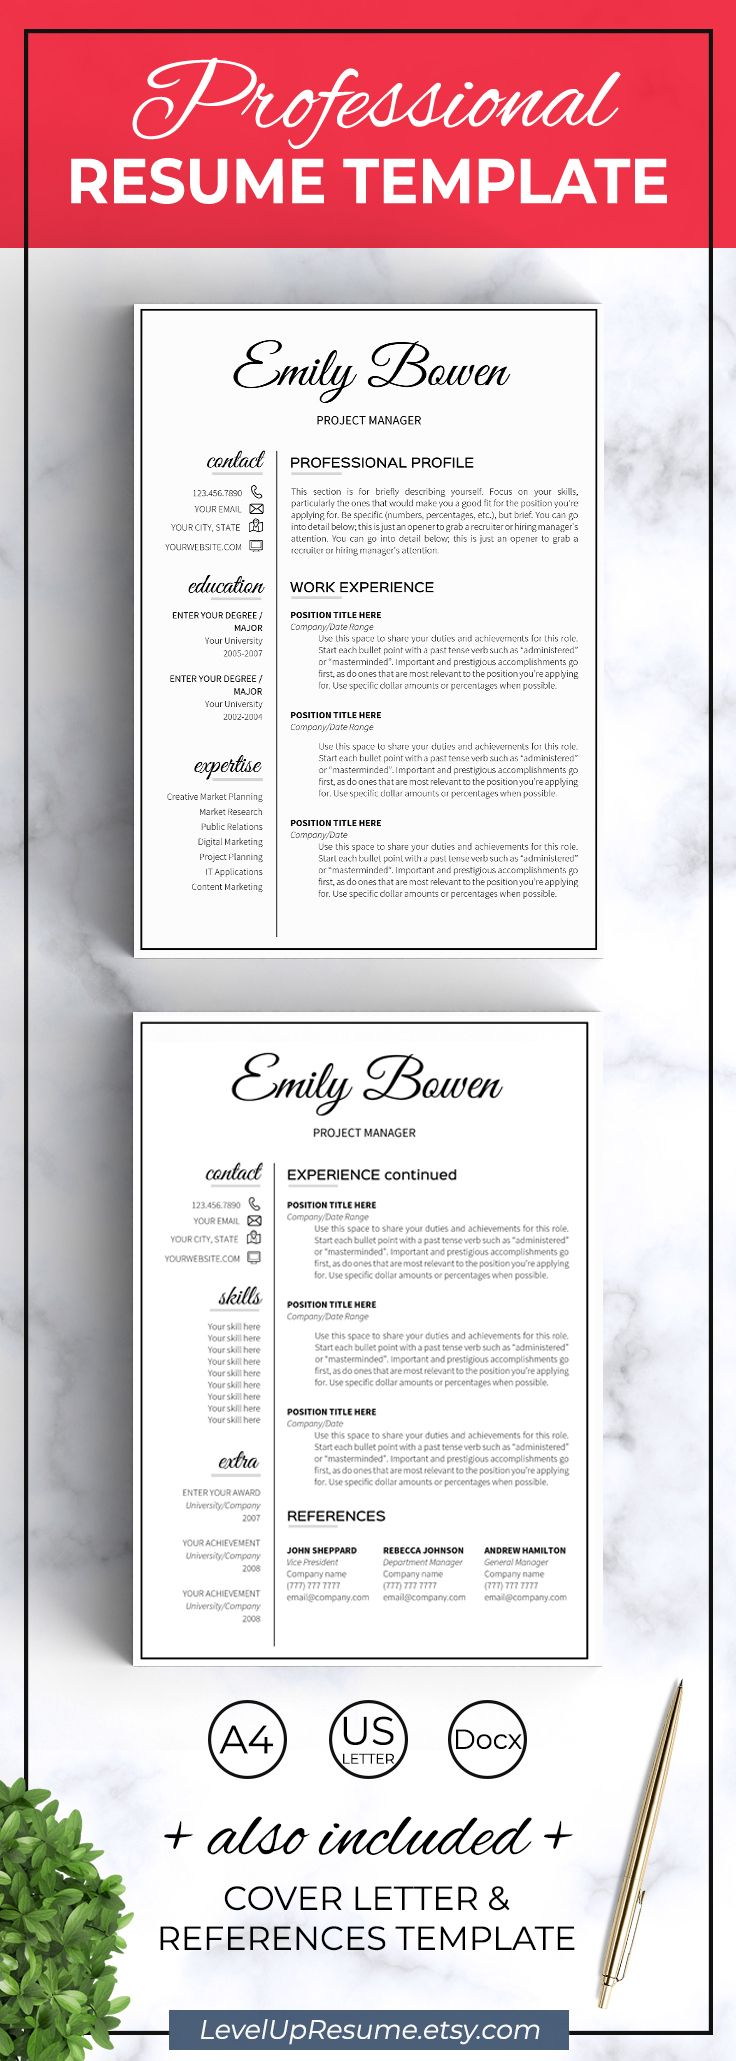 Modern resume template. Professional resume design. Career advice. Job search. Get hired!  Click on the link or save the pin to your board >>>>> #career #career advice #job #jobsearch #resume #resumetemplate #girlboss  . 2 page resume template Job resume Word template resume with icons Student resume Classic resume Elegant 1 page resume template word EB